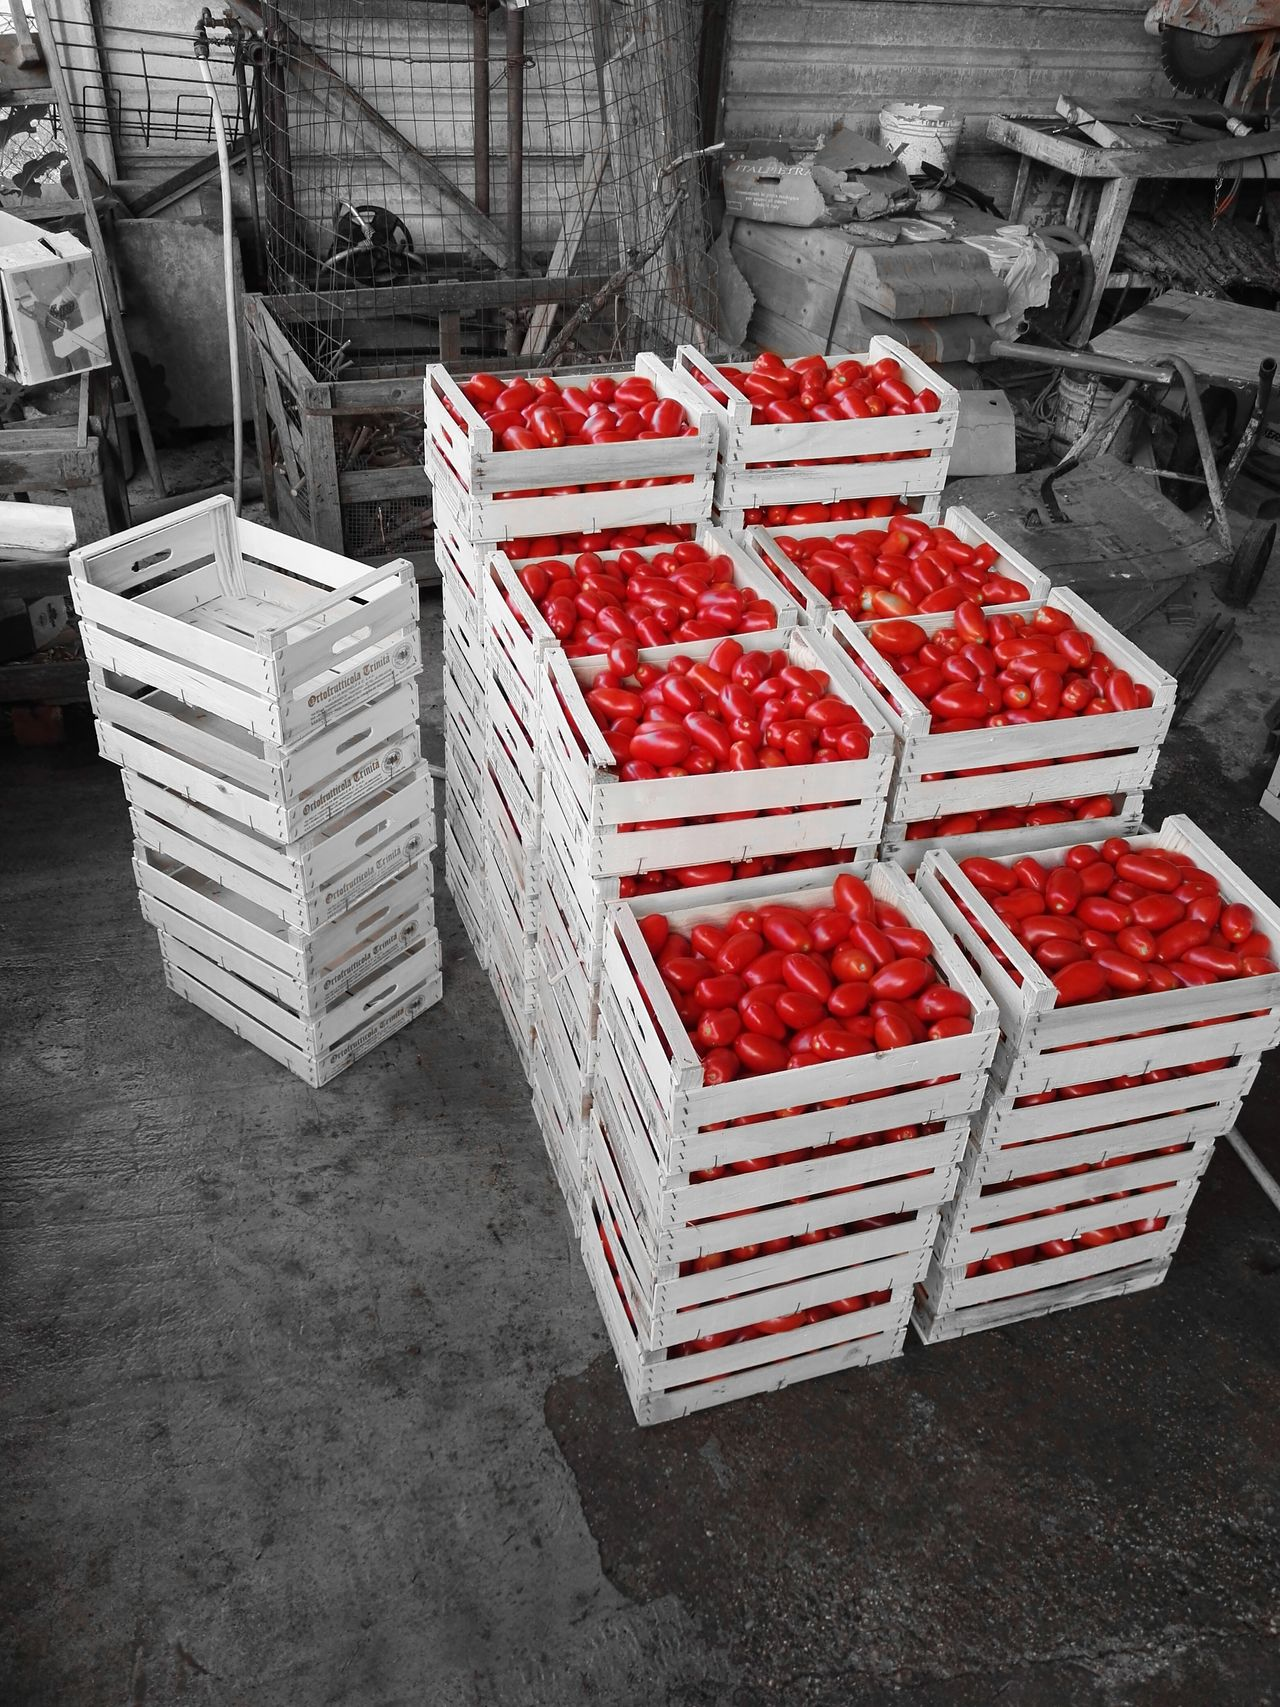 Red Huawei P9 Leica Monochrome Picoftheday Foodporn Foodphotography Tradition Passata Passatadipomodoro Wood - Material Day Work Work In Progress Tomato Tomatoes🍅🍅 Cut And Paste Only One Colour Particular Italy Verona Italy Homamade Homemade Food